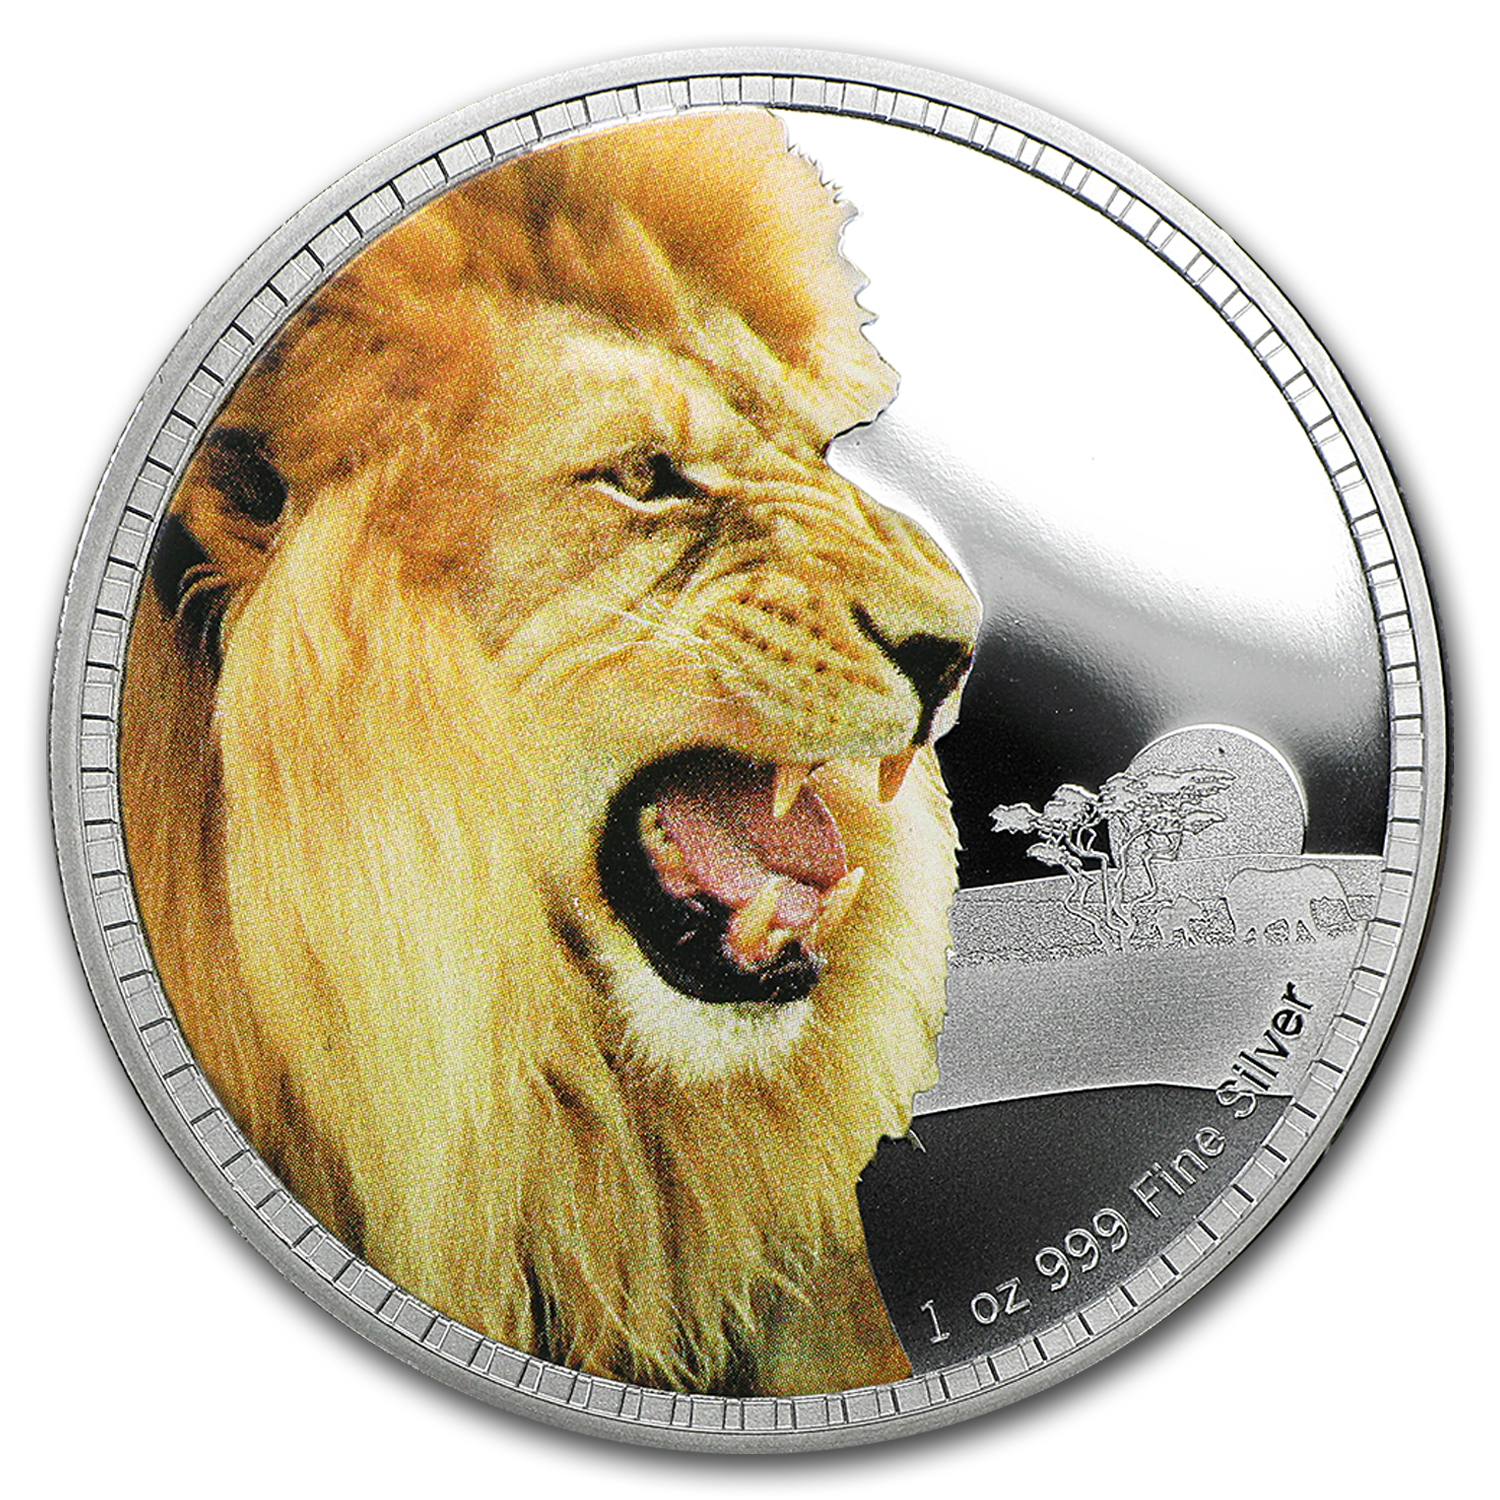 2016 Niue 1 oz Silver Kings of Continents African Lion